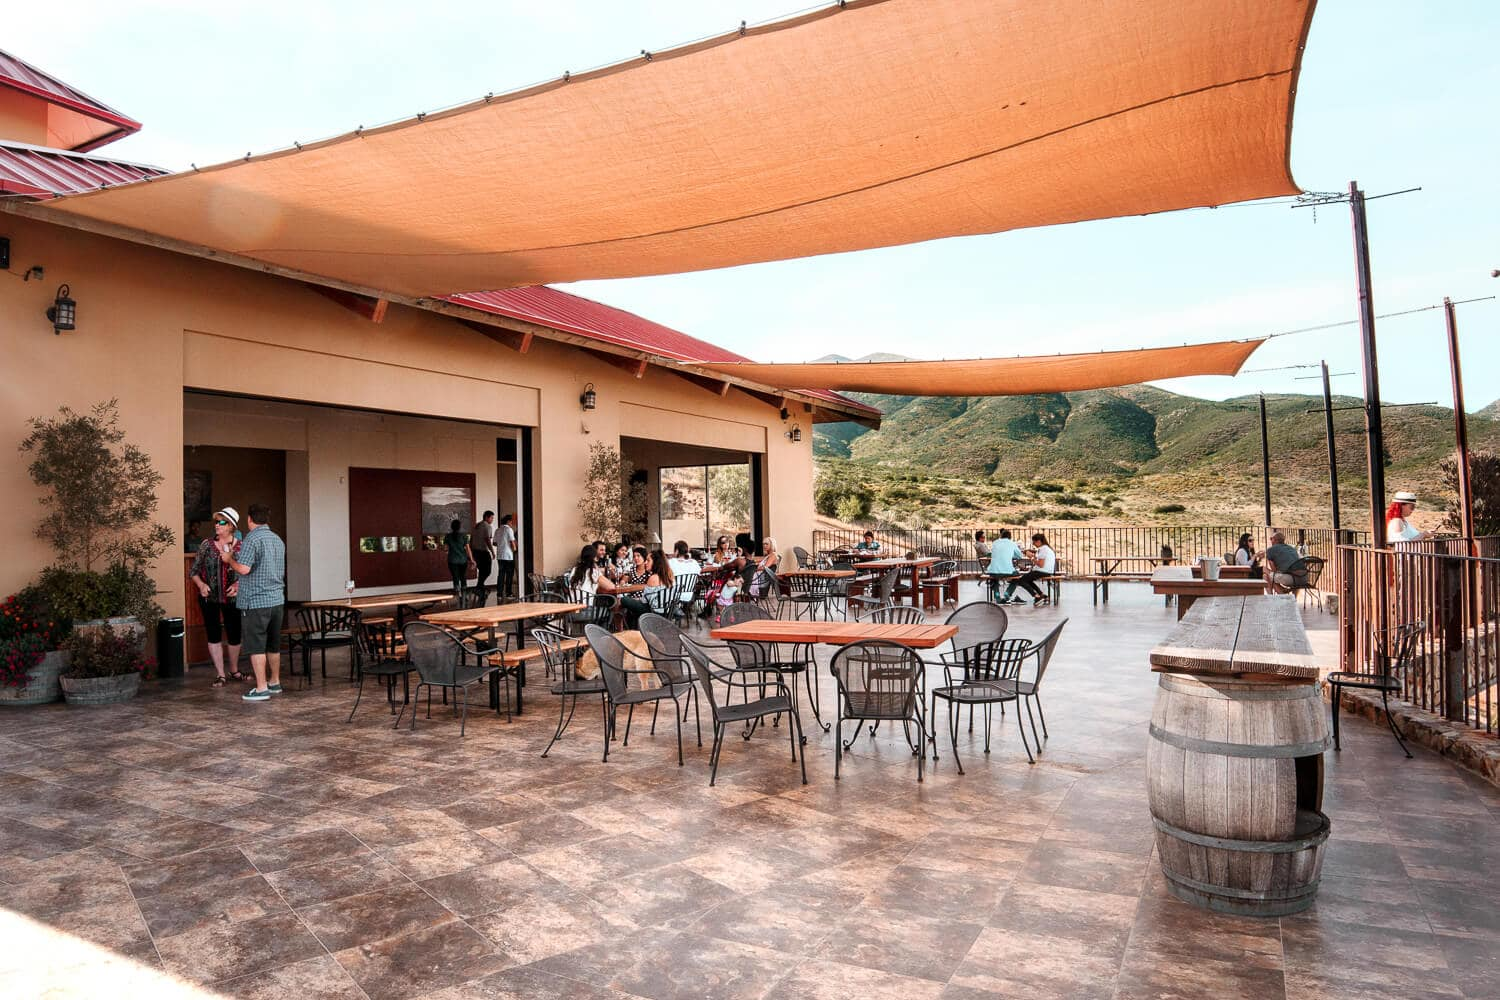 Las Nubes | Valle de Guadalupe is one of the most up and coming wine regions in the world. From it's innovative designs, picturesque views and award winning wines, keep reading to discover which Valle de Guadalupe wineries you shouldn't miss while in Baja California, Mexico.